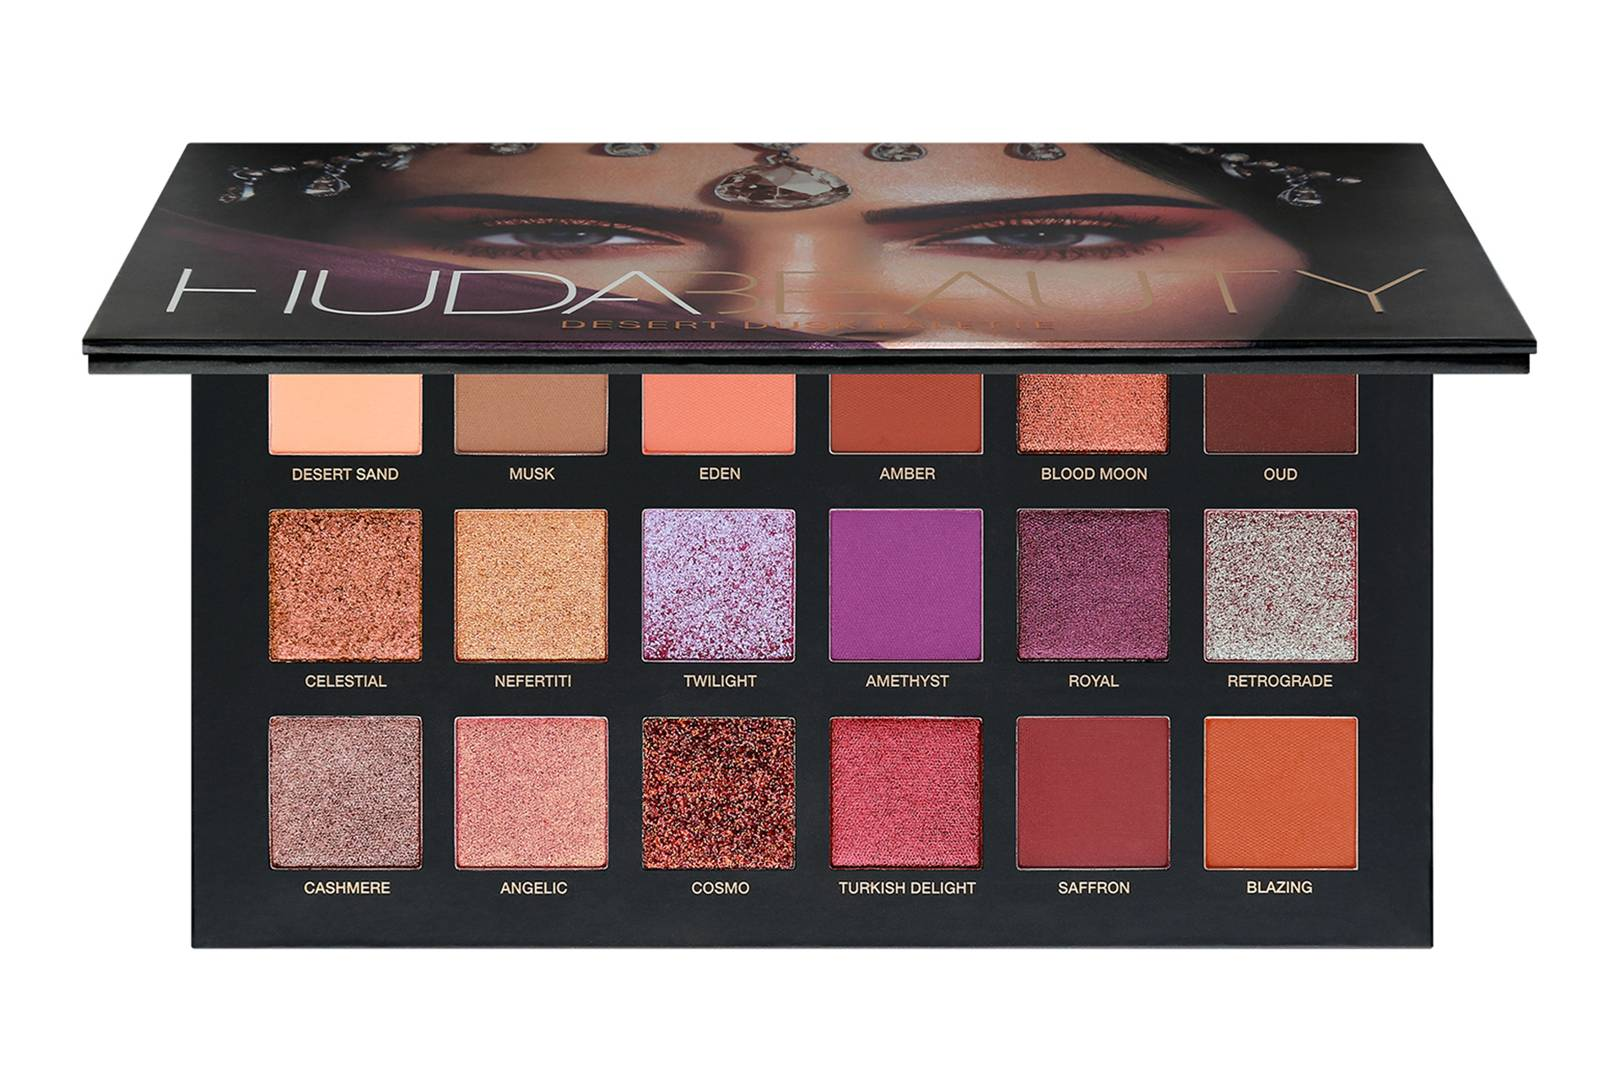 Huda Palettes The Best To Buy And How To Use Them Glamour Uk